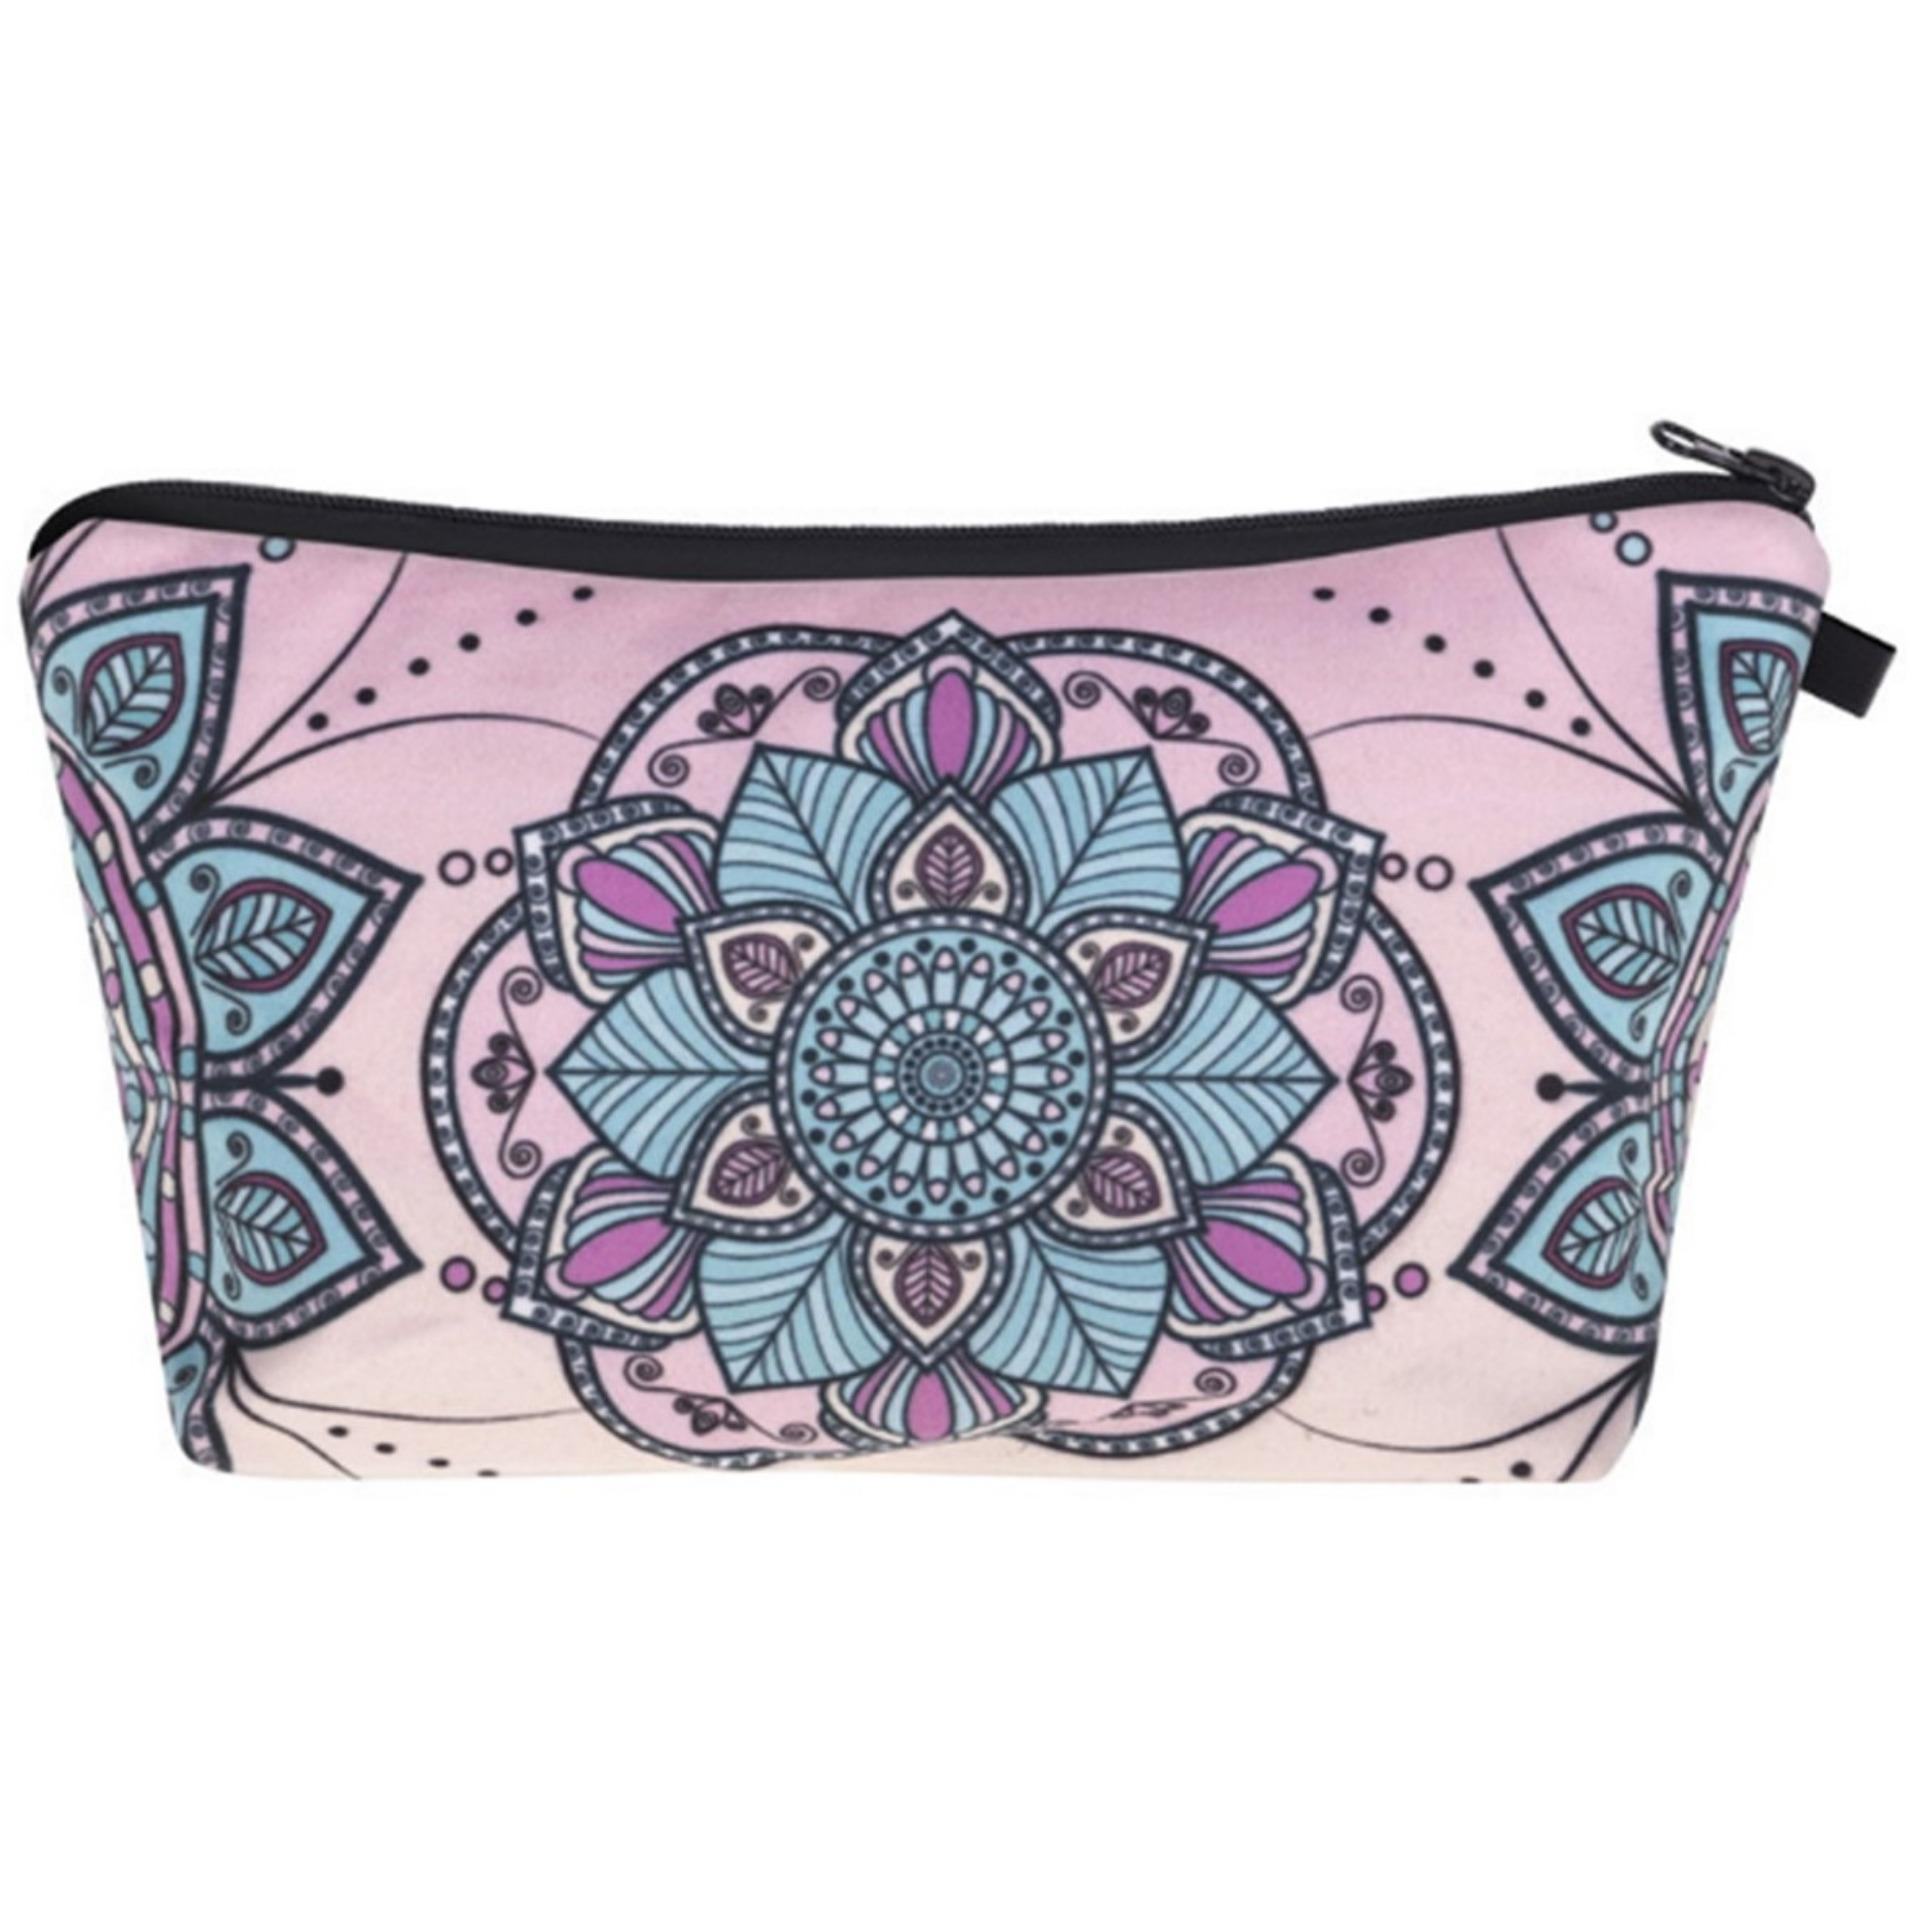 JOM TOKOY Travel Makeup Case Cosmetic Bags Tas Make Up Pouch